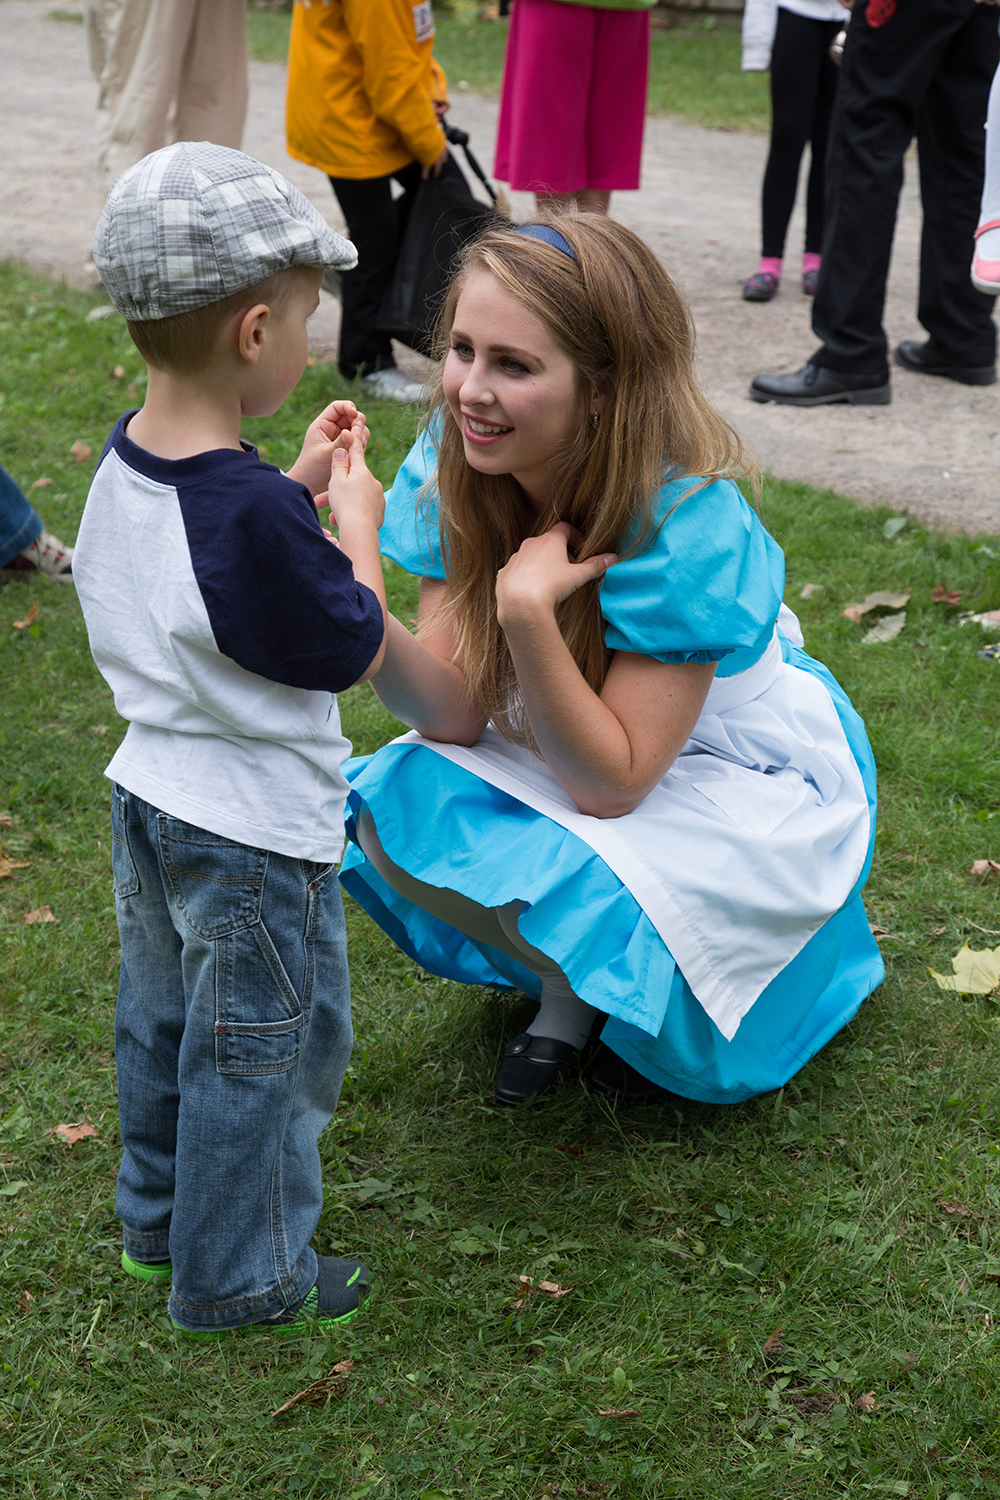 Young boy standing next to a young woman dressed as Alice in Wonderland